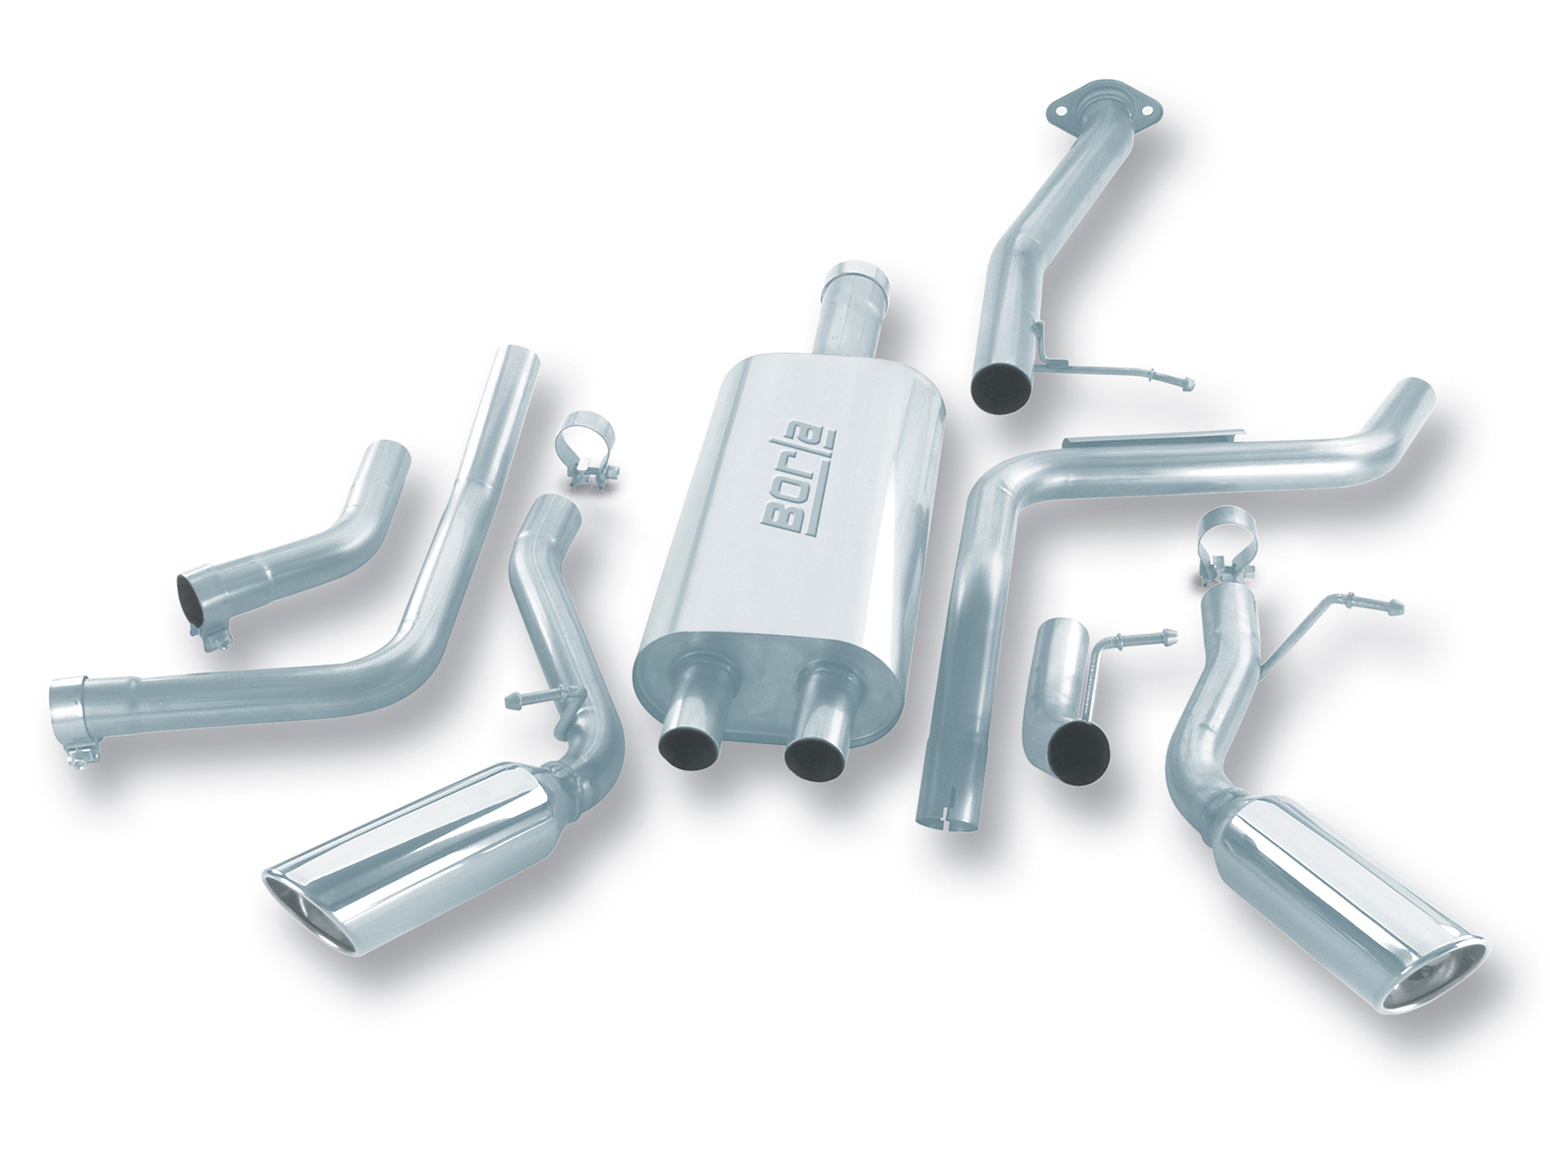 "Gmc Yukon Xl 1500 2001-2003 Borla 3"", 2.25"" Cat-Back Exhaust System - Single Round Rolled Angle-Cut Lined Resonated"